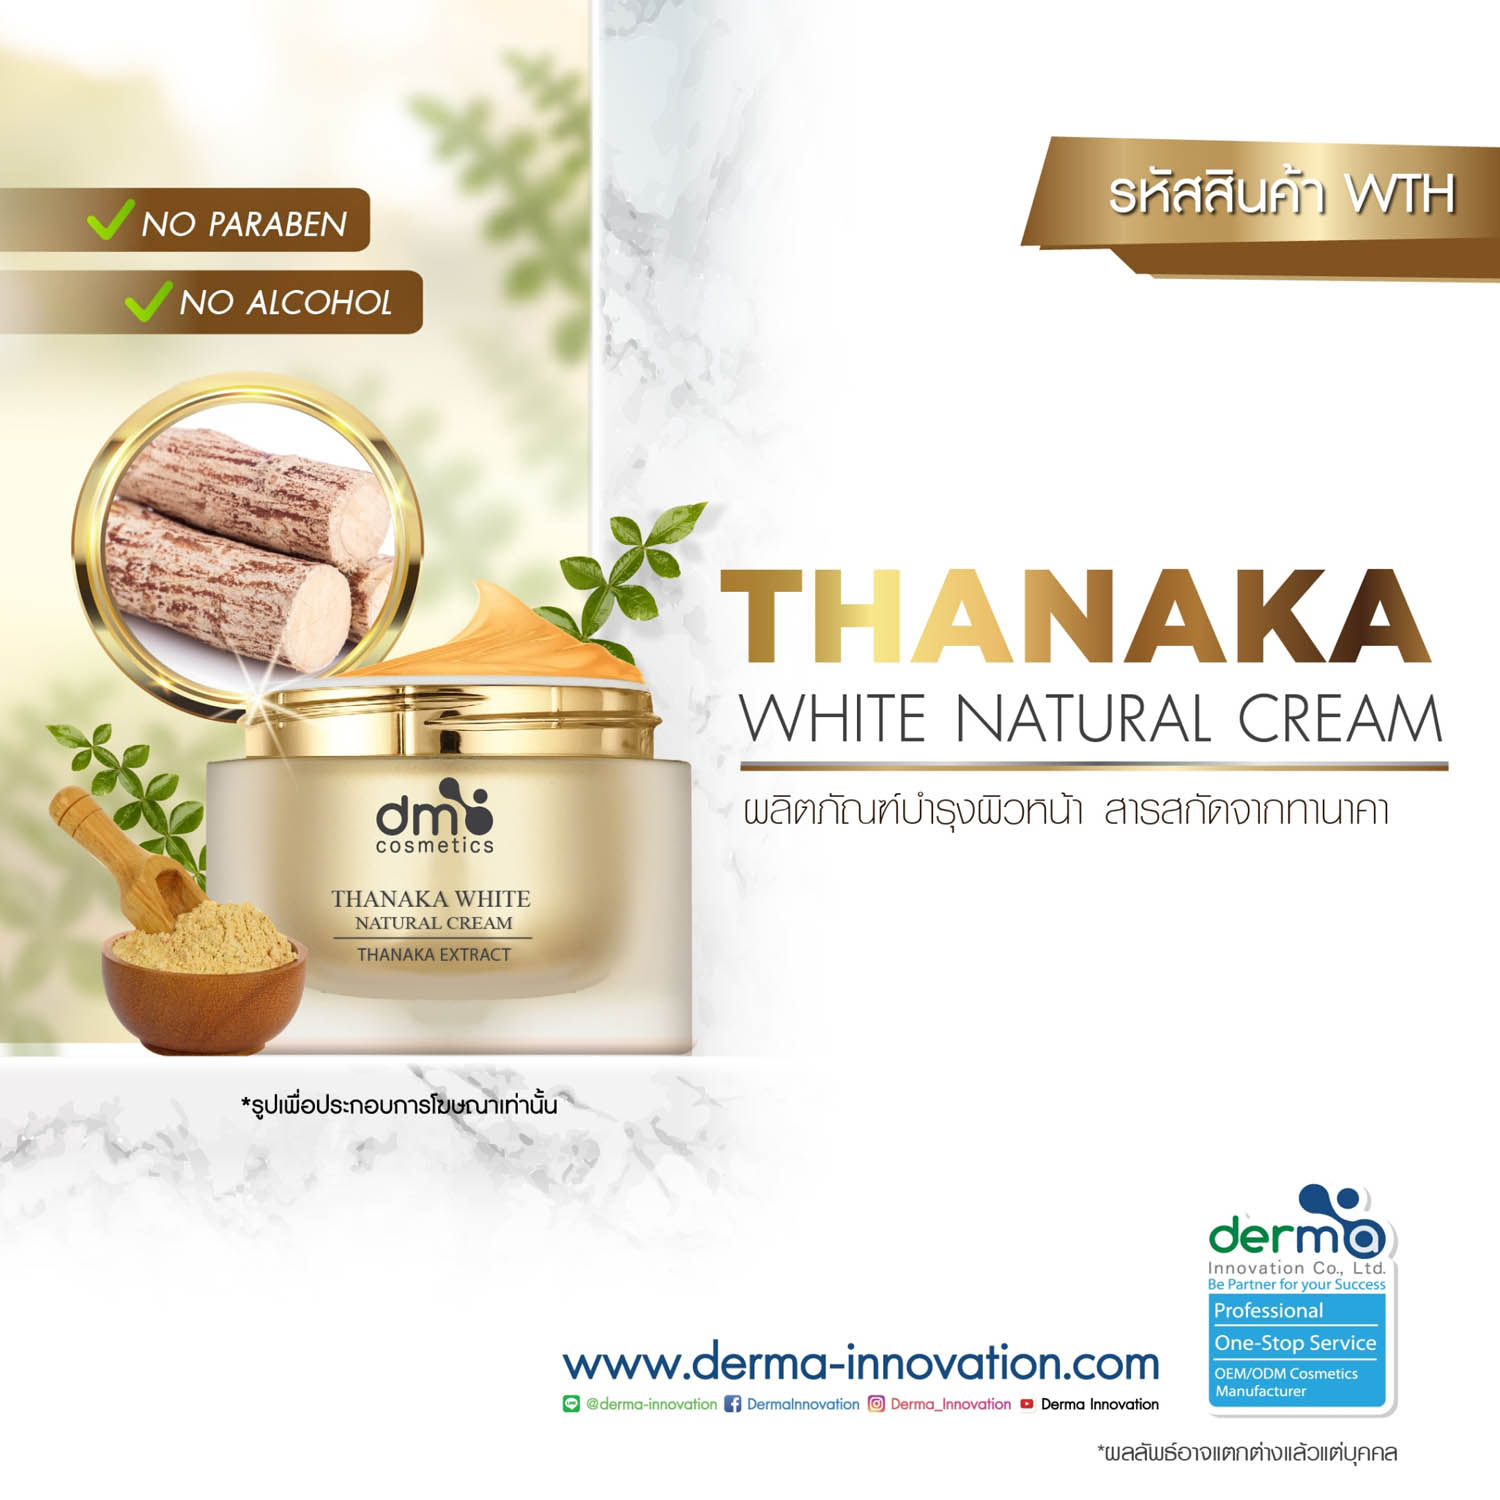 Thanaka White Natural Cream